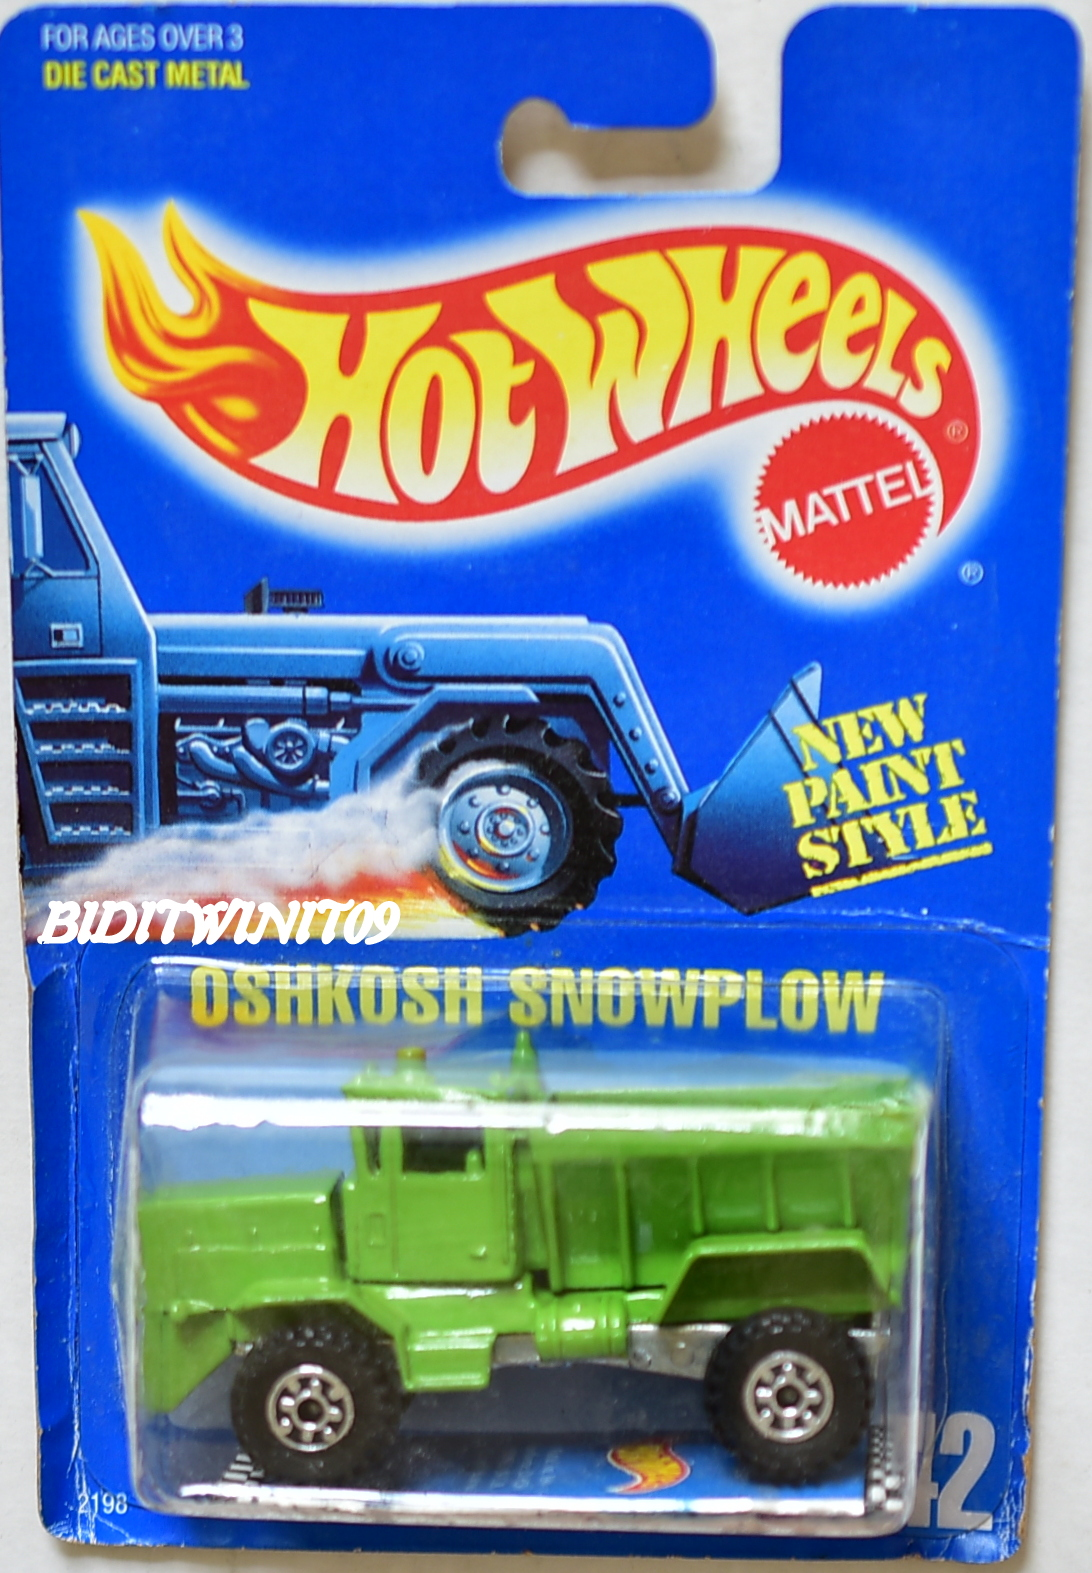 HOT WHEELS 1989 OSHKOSH SNOWPLOW ERROR NO PLOW #42 E+